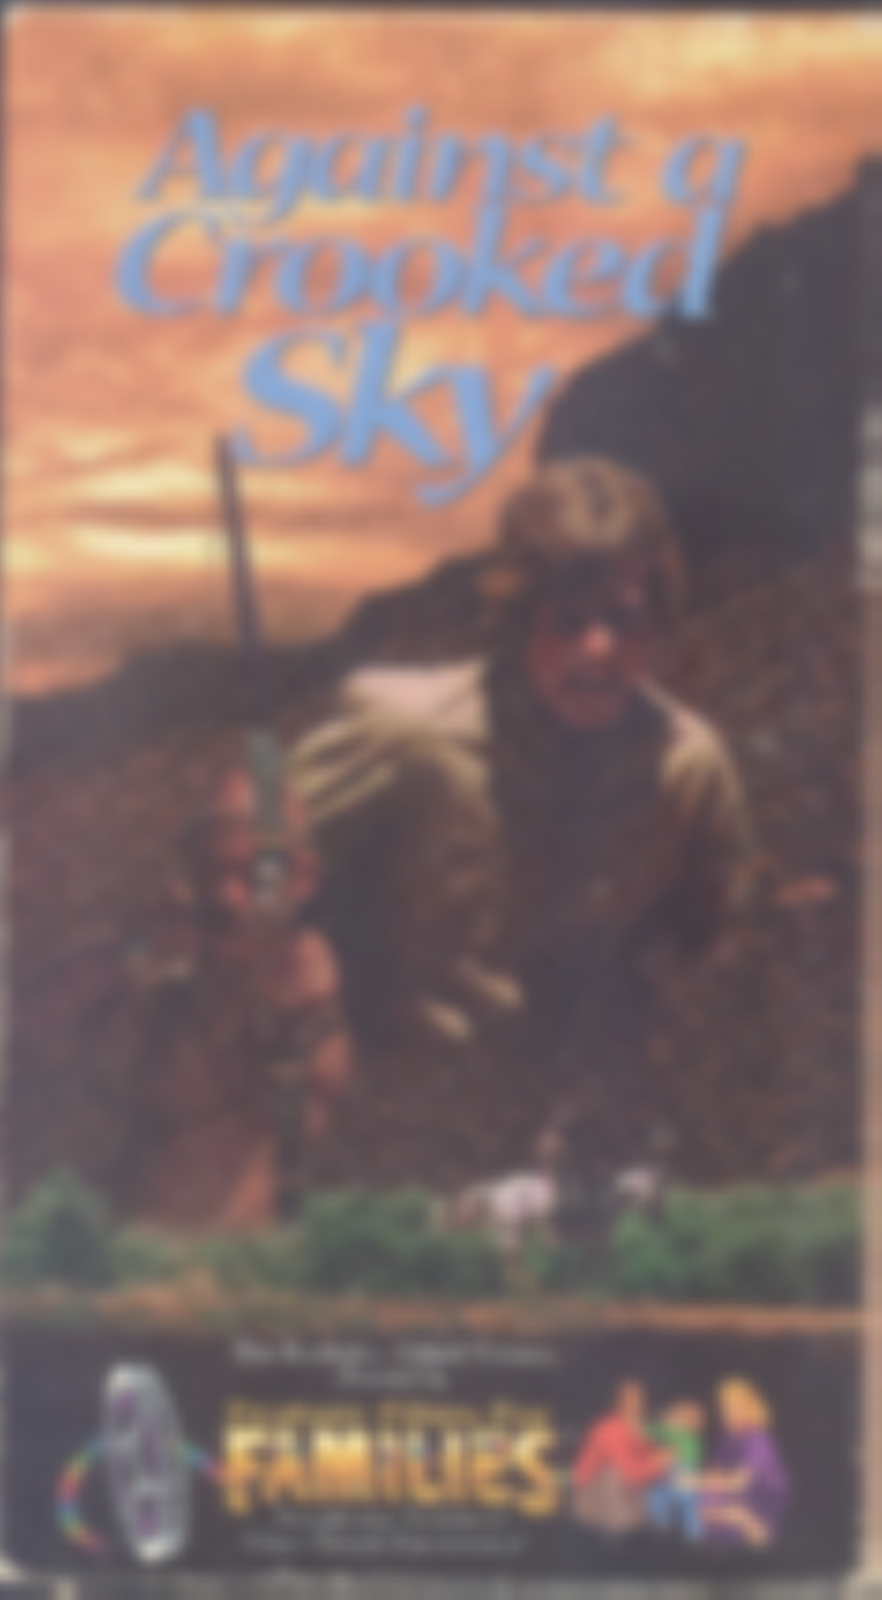 Against A Crooked Sky Vhs